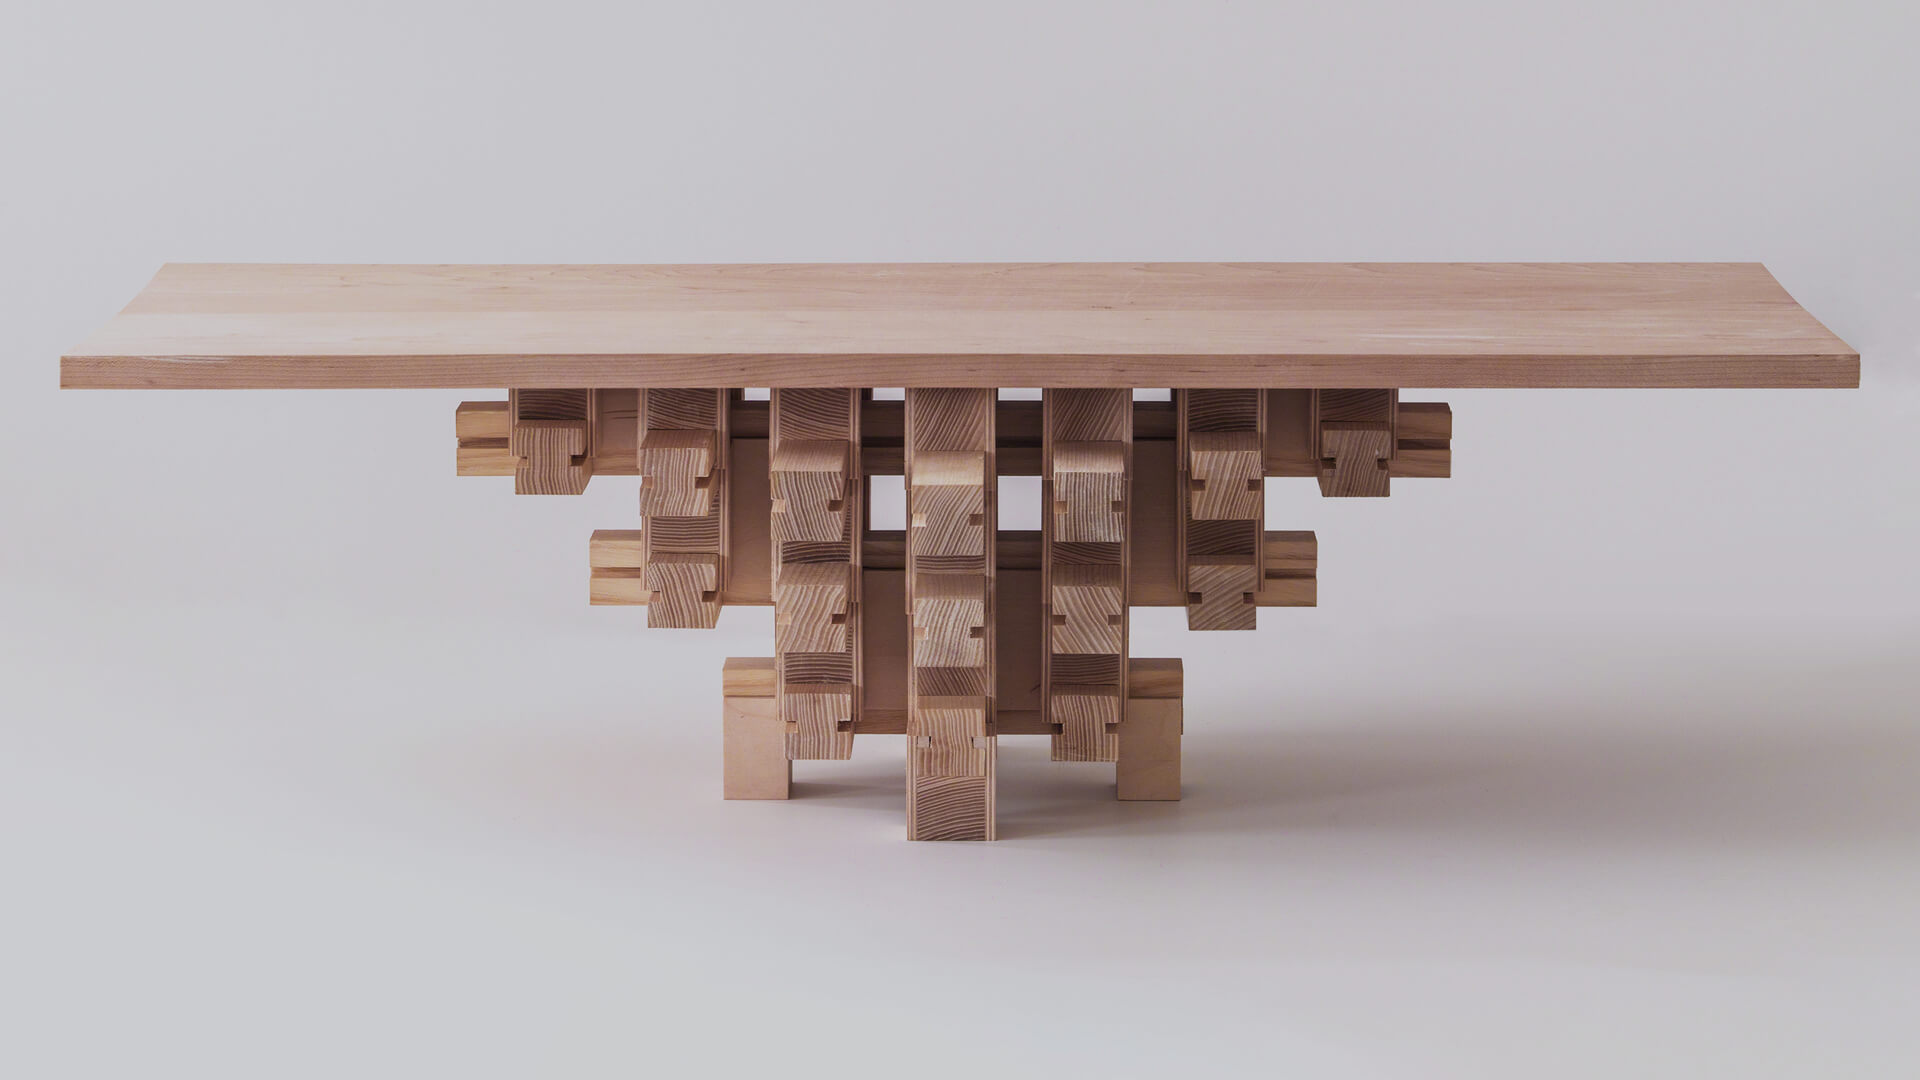 The Dougong Table crafted by Boston-based industrial designer Mian Wei | Dougong Table by industrial designer Mian Wei | STIRworld